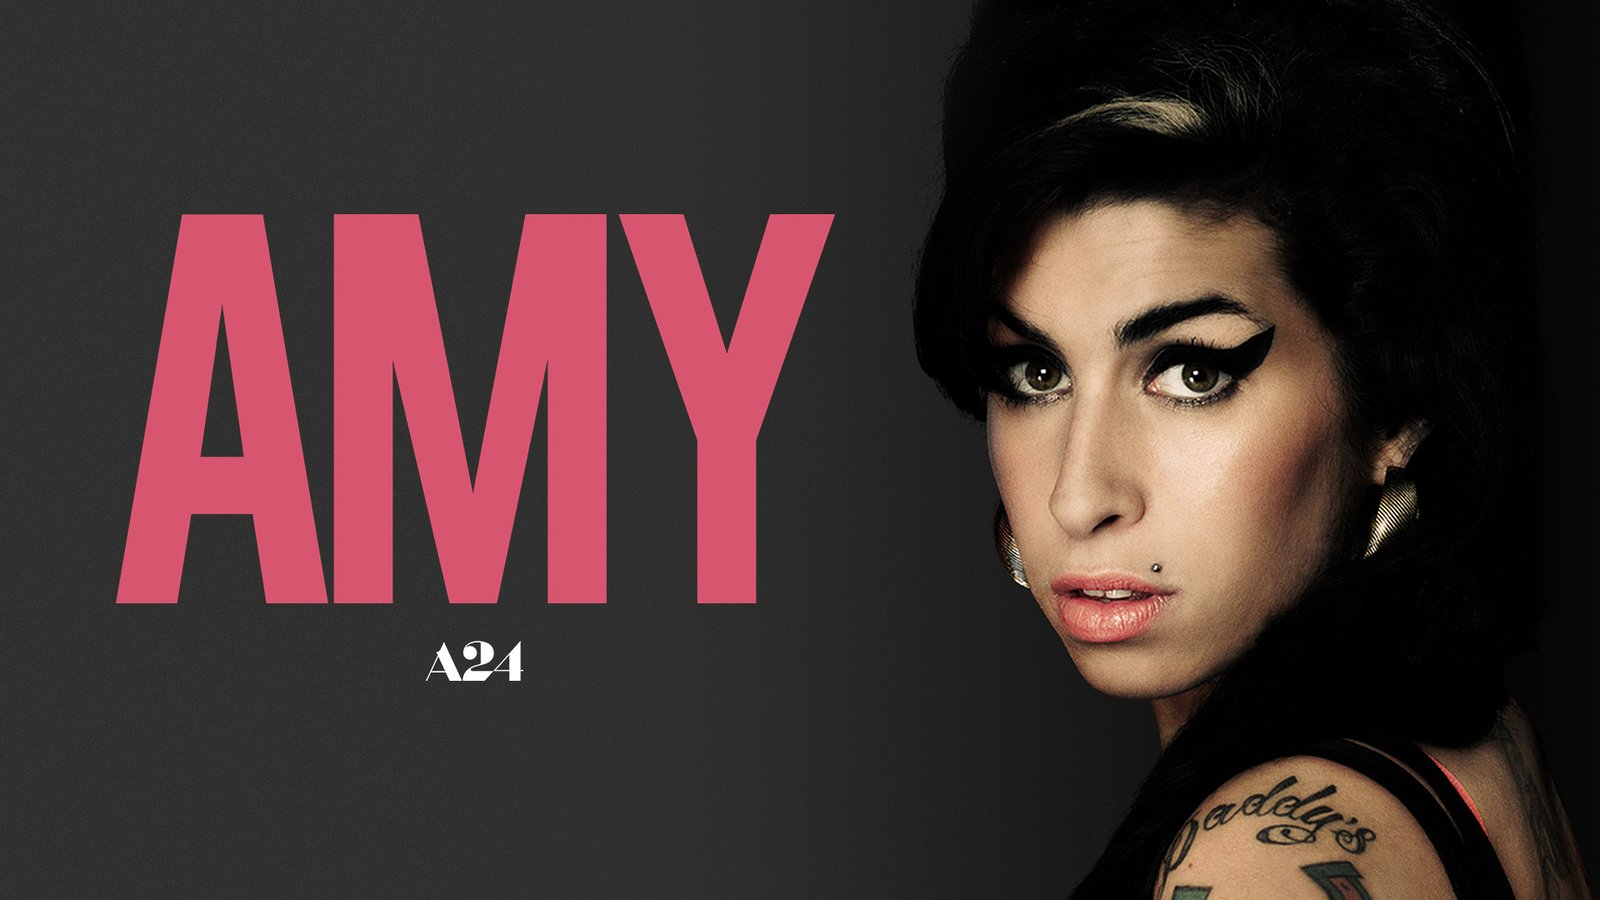 Amy - The Tragic Story of Amy Winehouse